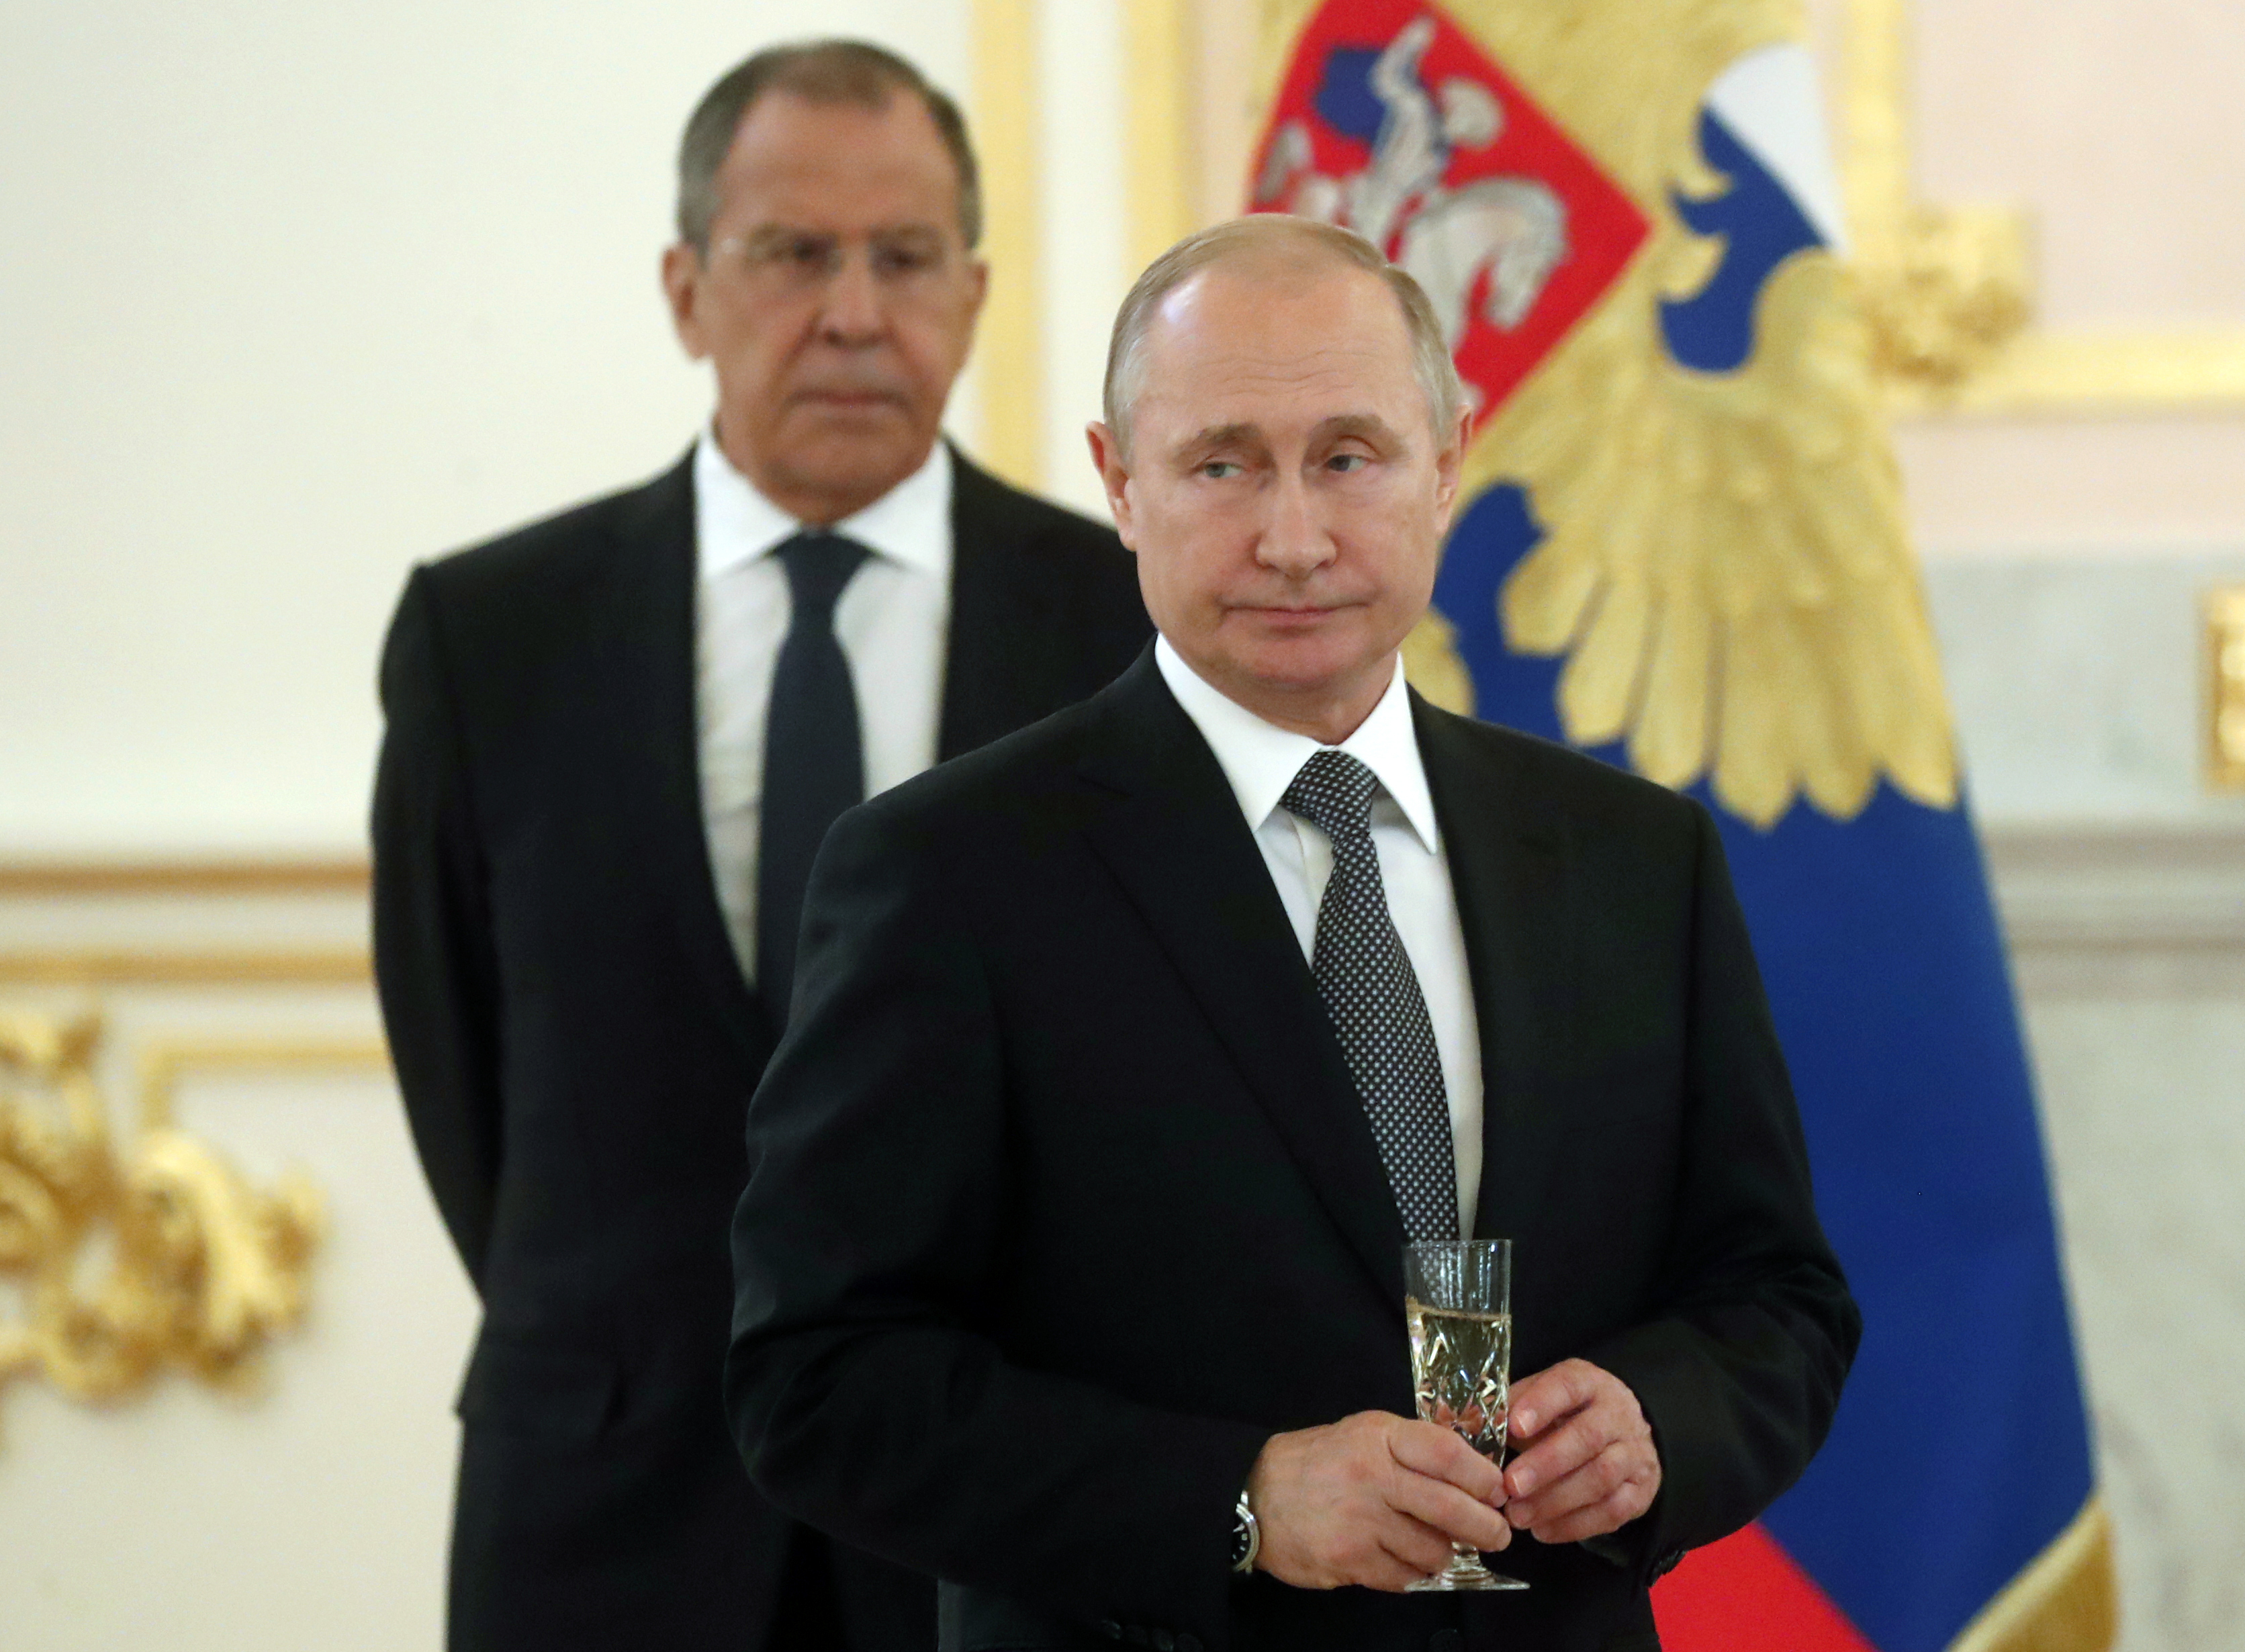 Putin signs bill suspending participation in nuclear treaty